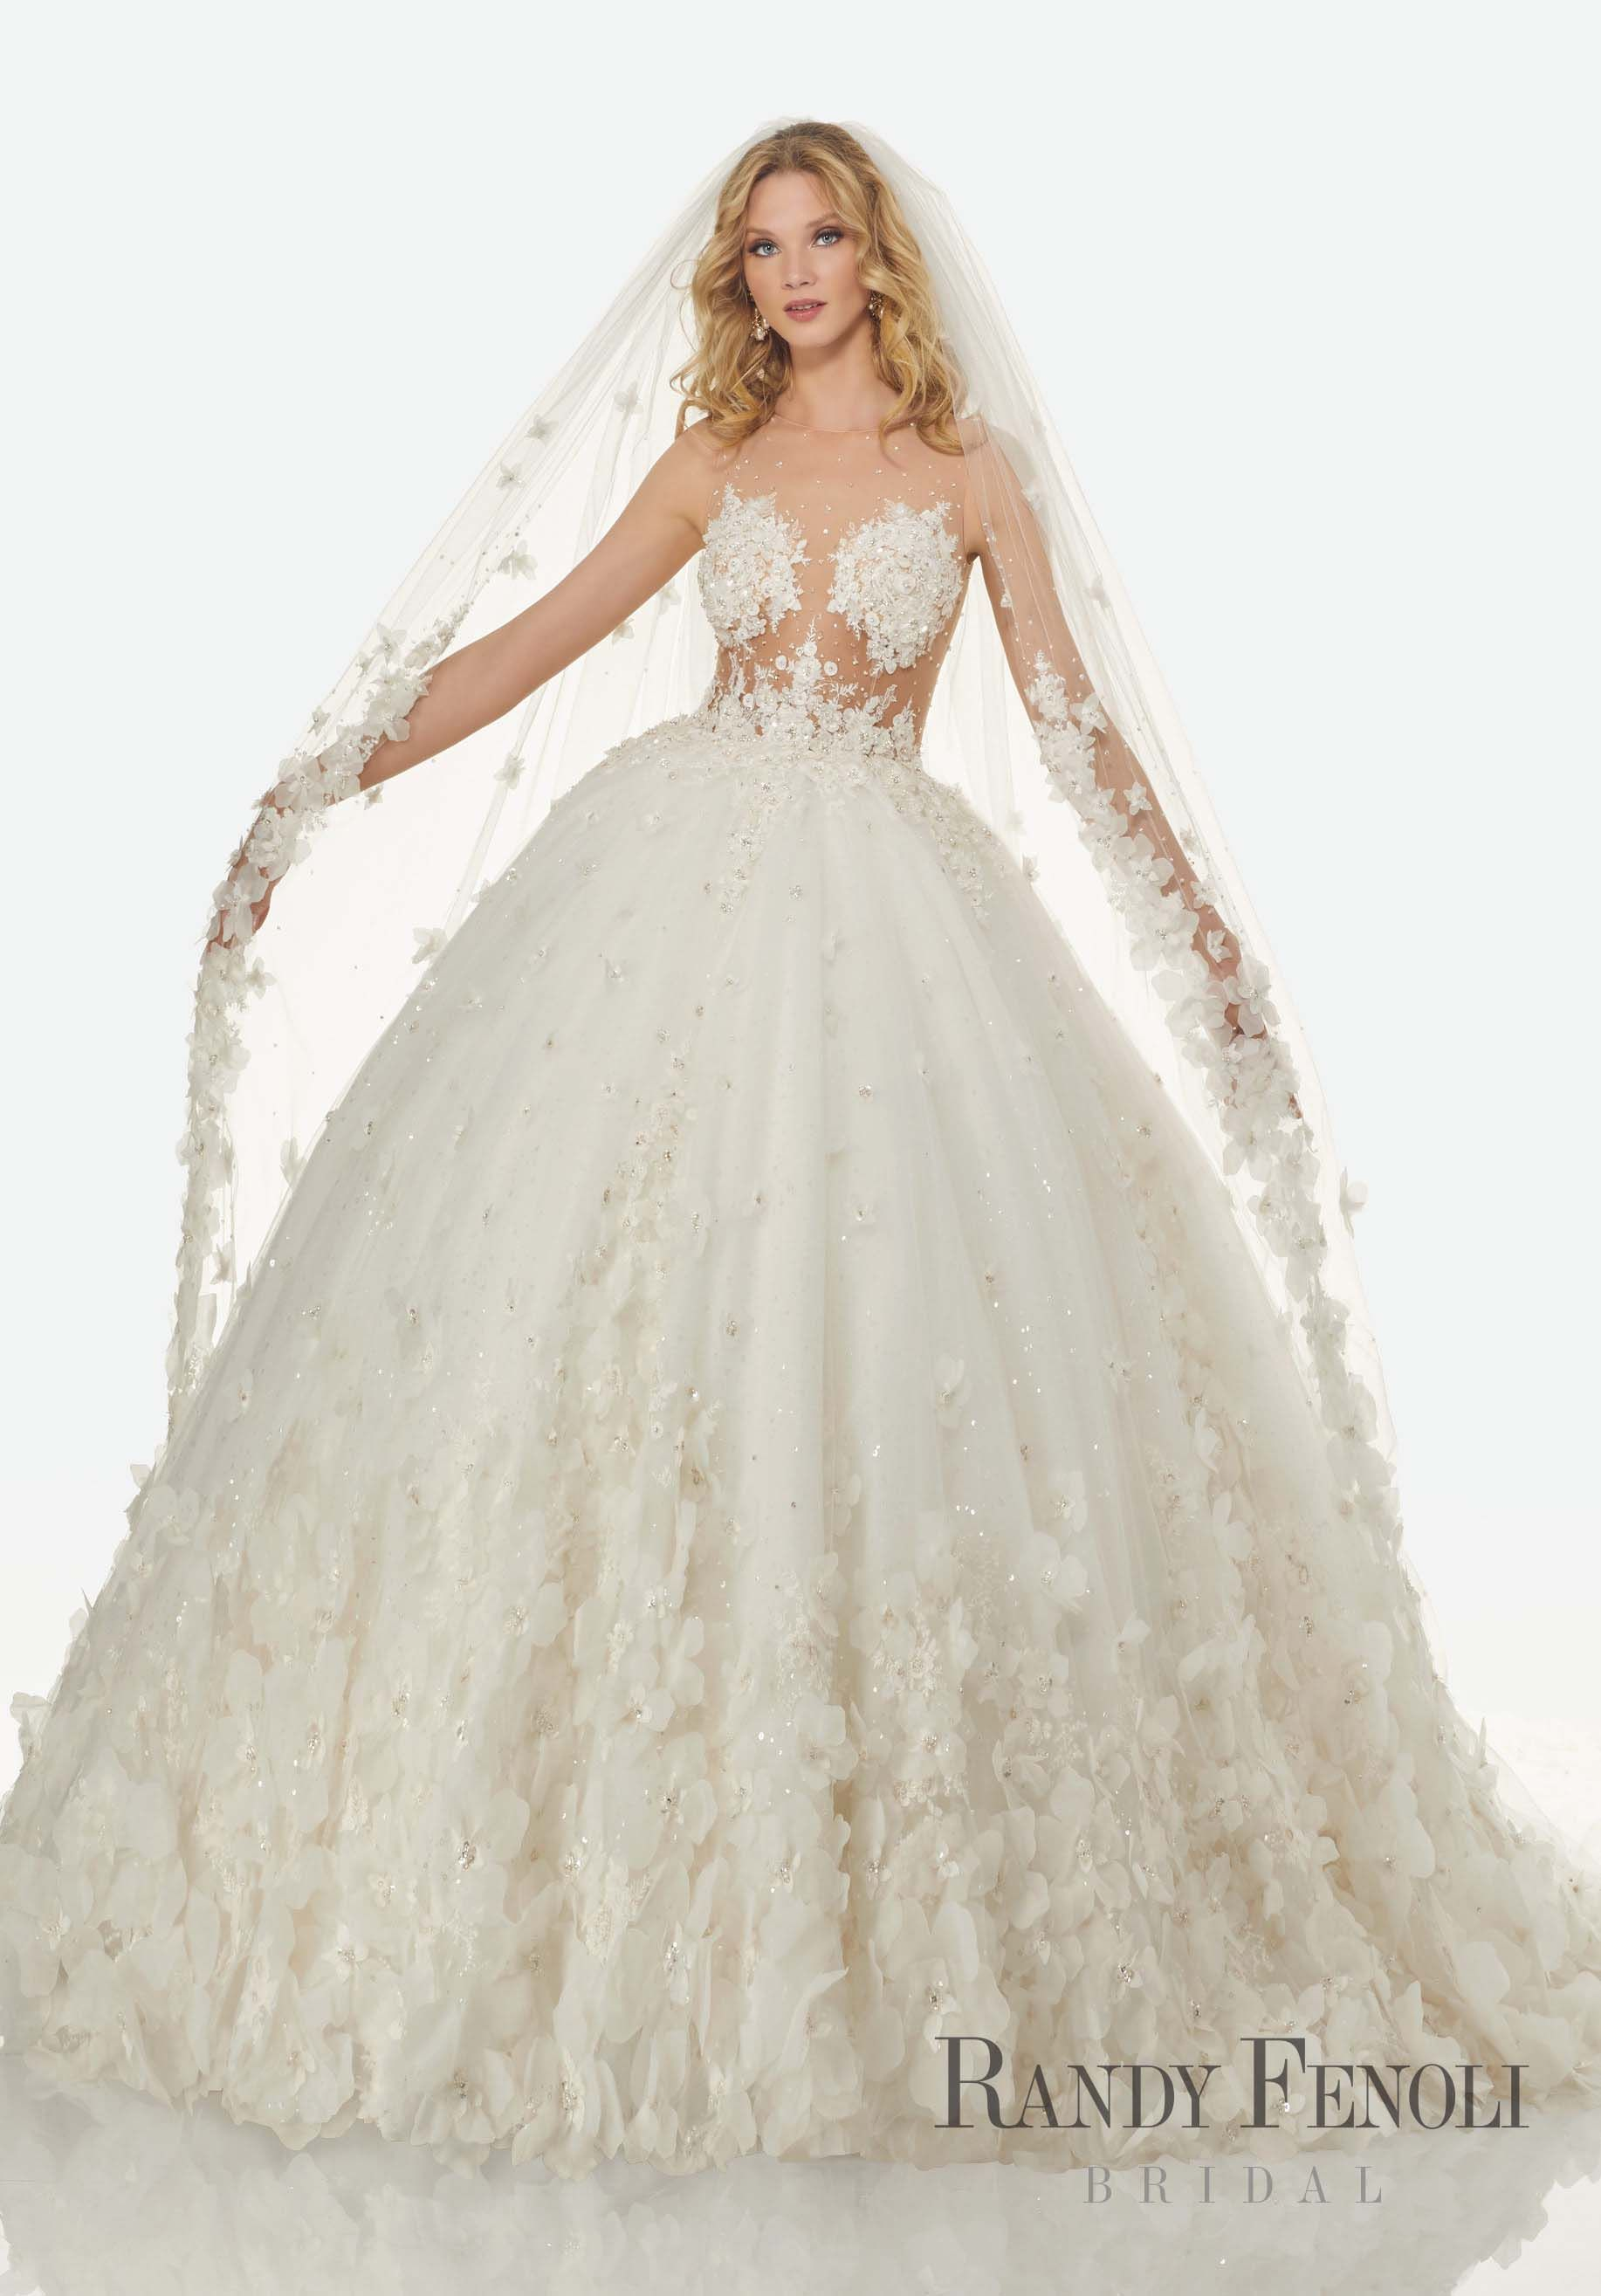 Randy Fenoli Bridal, Brandi Wedding Dress  Style 9. Diamante